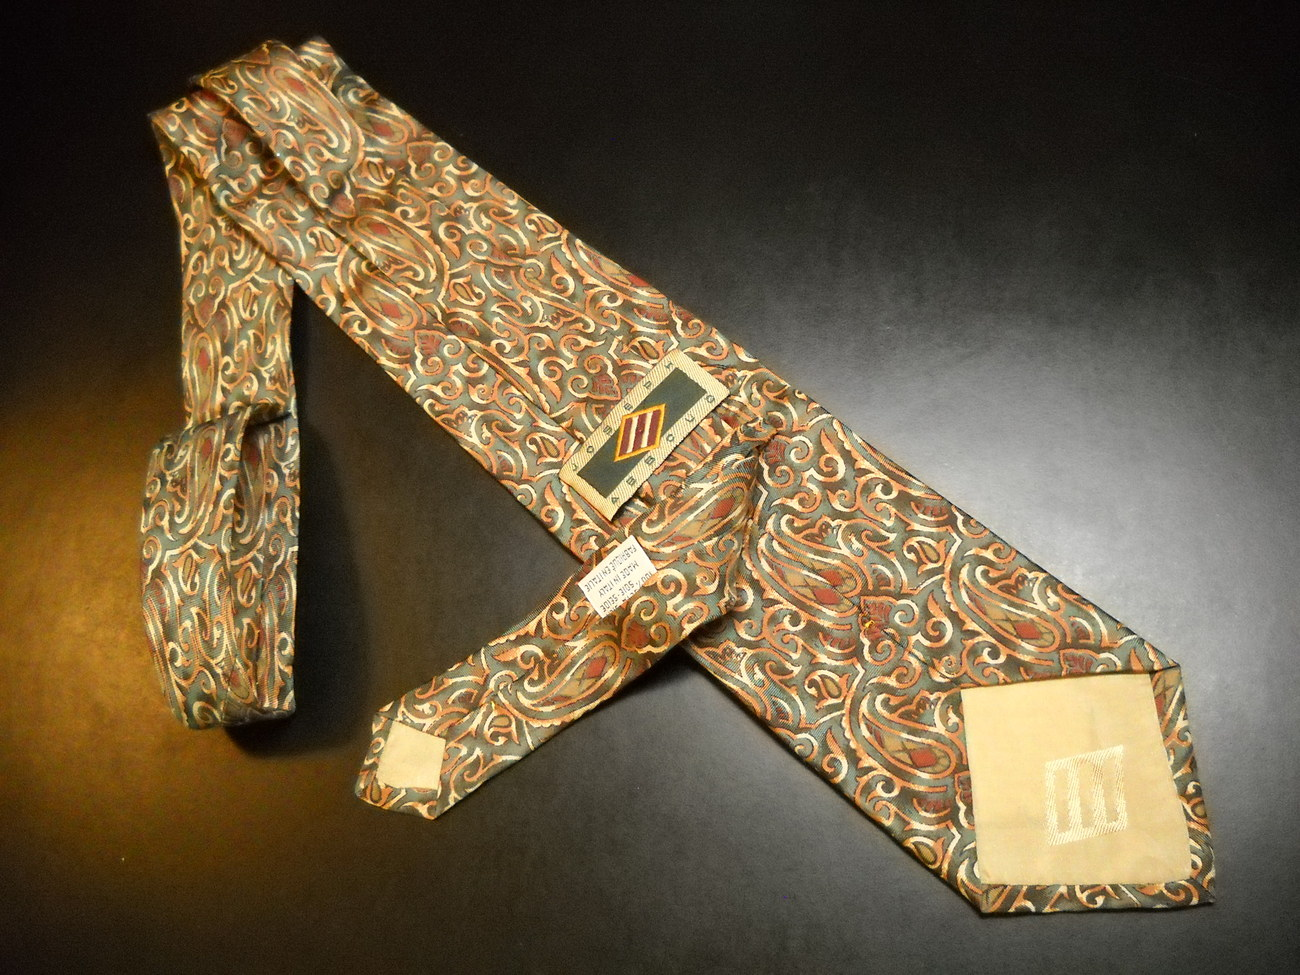 Joseph Abboud Neck Tie Green Background with Golds Browns Rusts Paisley Italian